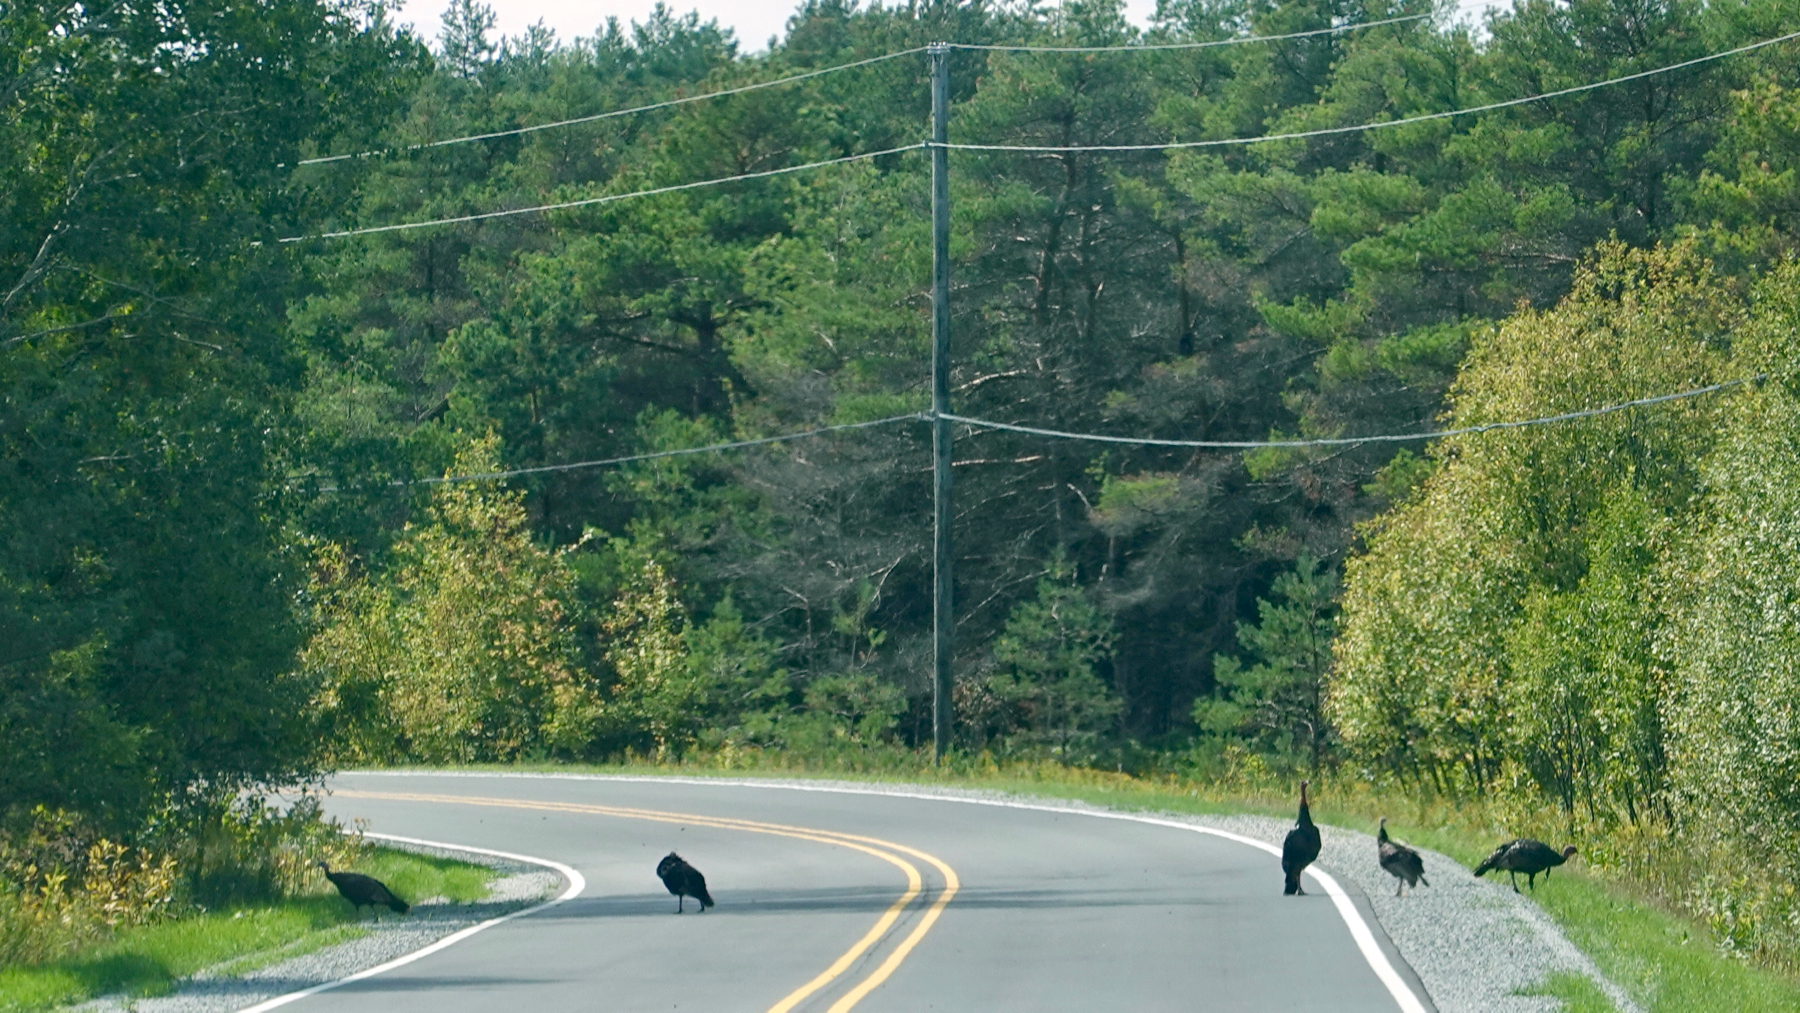 Turkeys on road